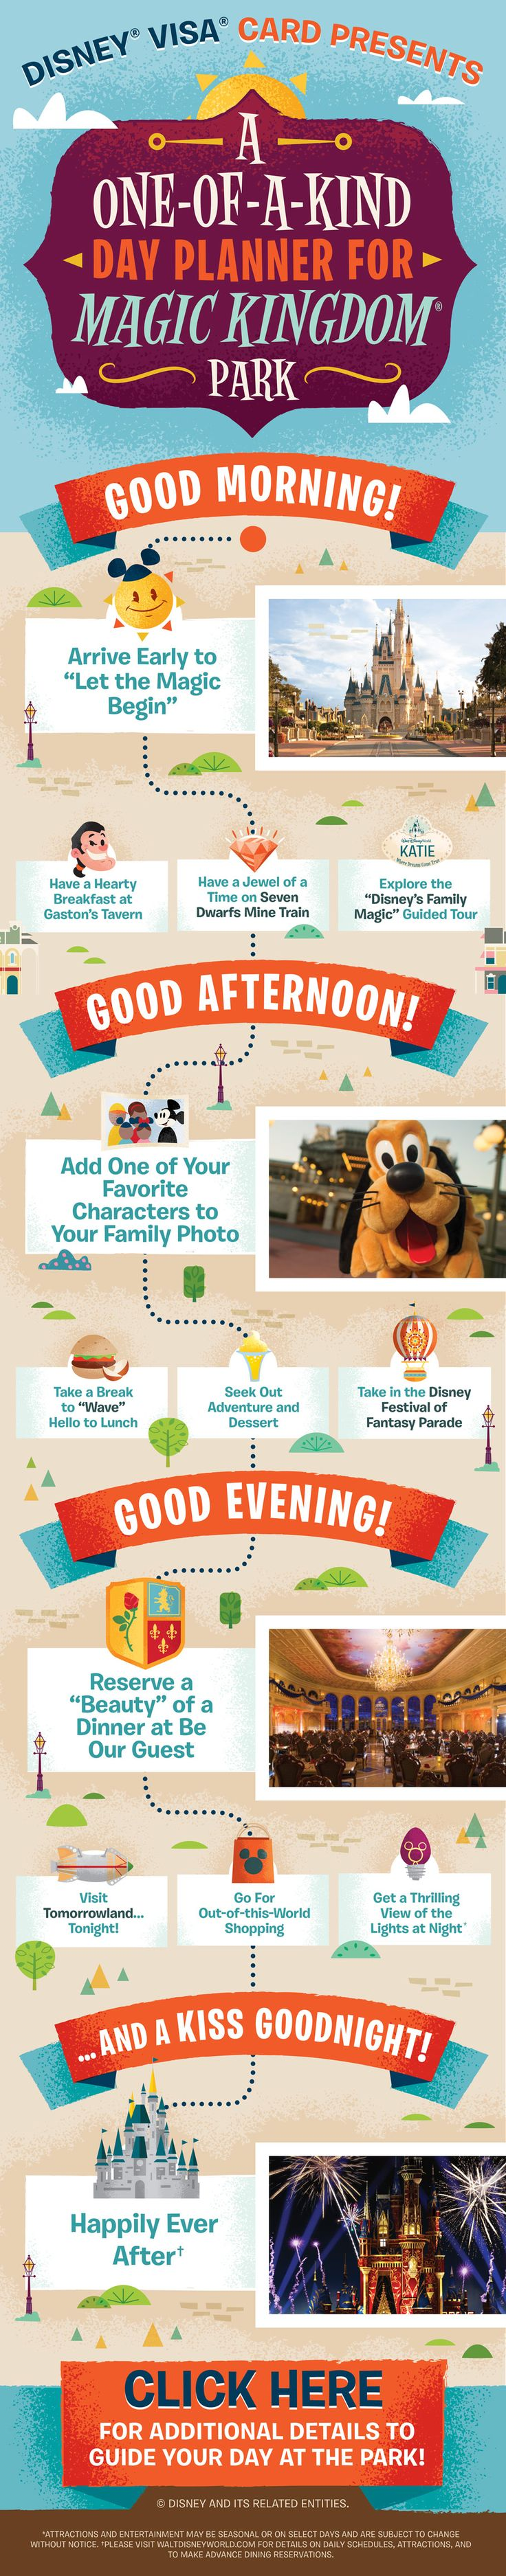 For newcomers and repeat visitors alike, the question is always how to plan your day to get the most out of your vacation to Magic Kingdom® Park at Walt Disney World® Resort. Well, our guide has plenty of ideas! From breakfast, to dinner, with snacks in between, and all the way through to the evening's events, we'll guide you through your Disney day.